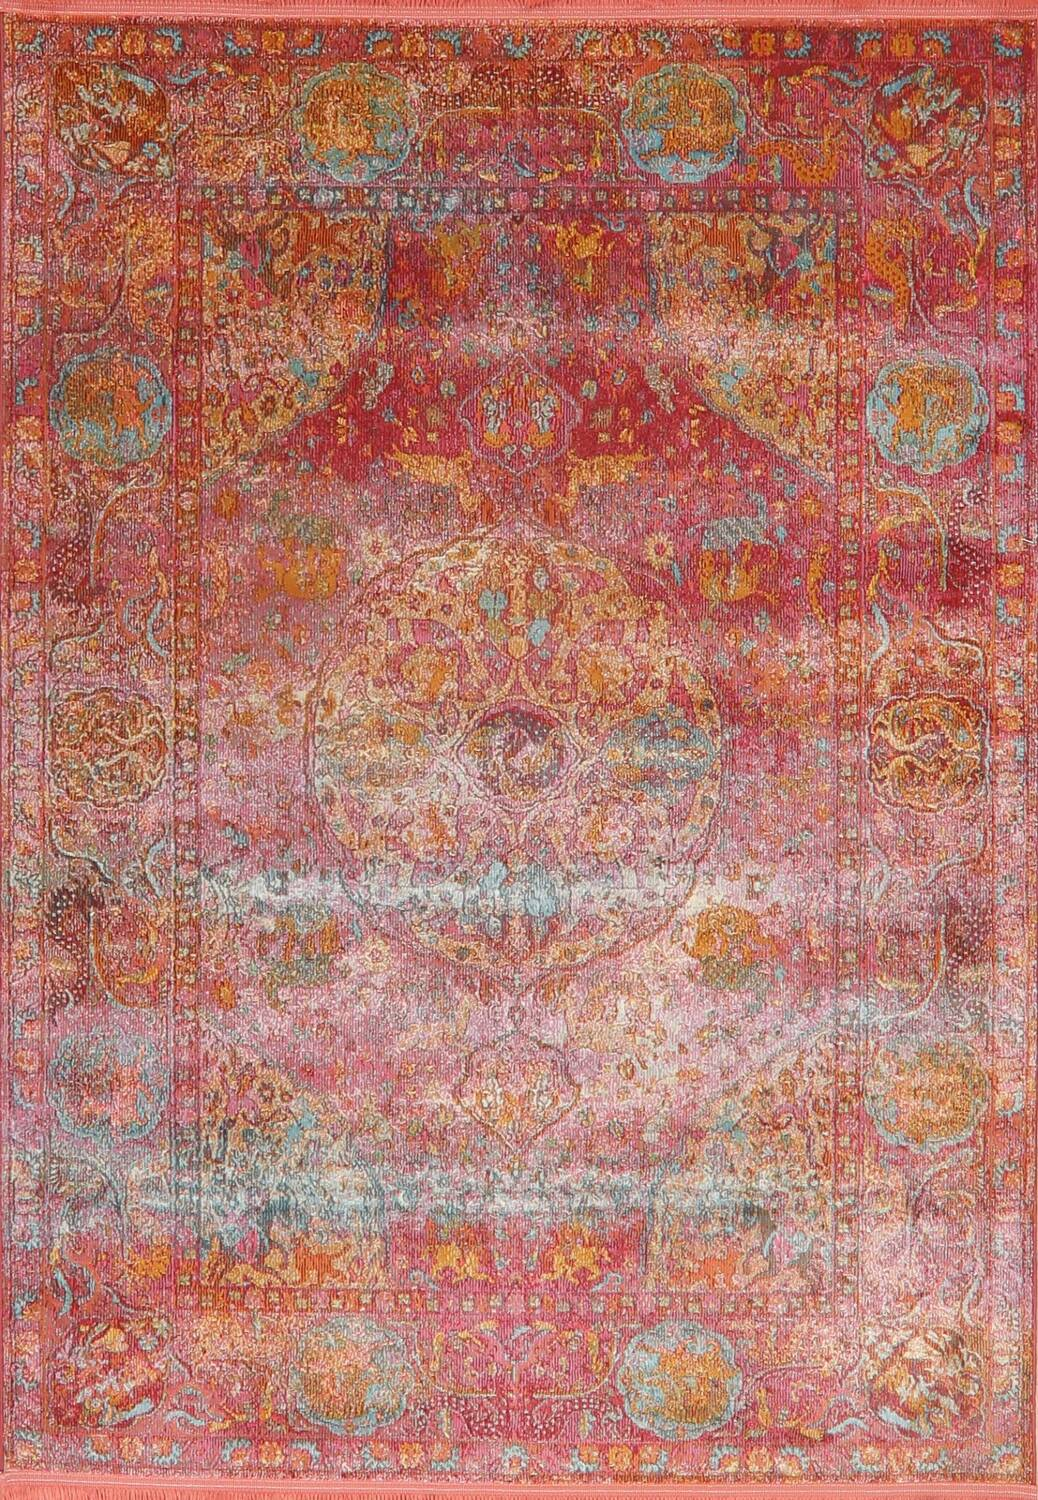 Hunting Design Pictorial Distressed Heat-Set Area Rugs image 11